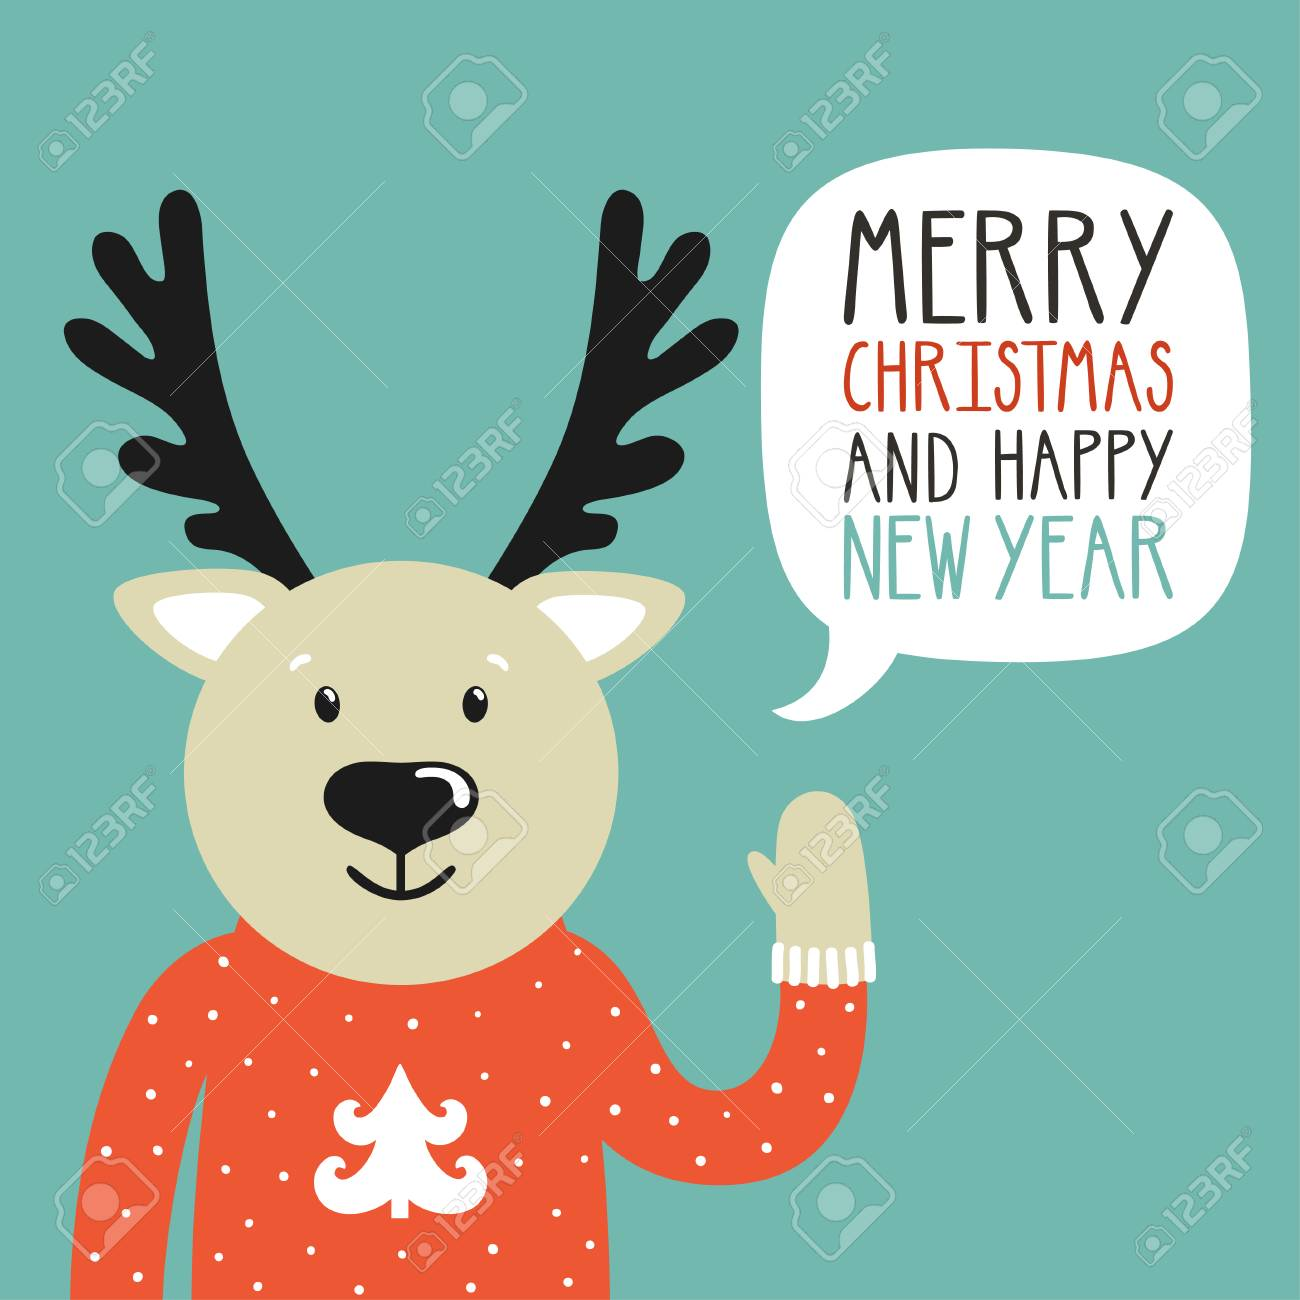 vector vector holiday illustration of a cute deer in a sweater saying merry christmas and happy new year christmas background with smiling cartoon